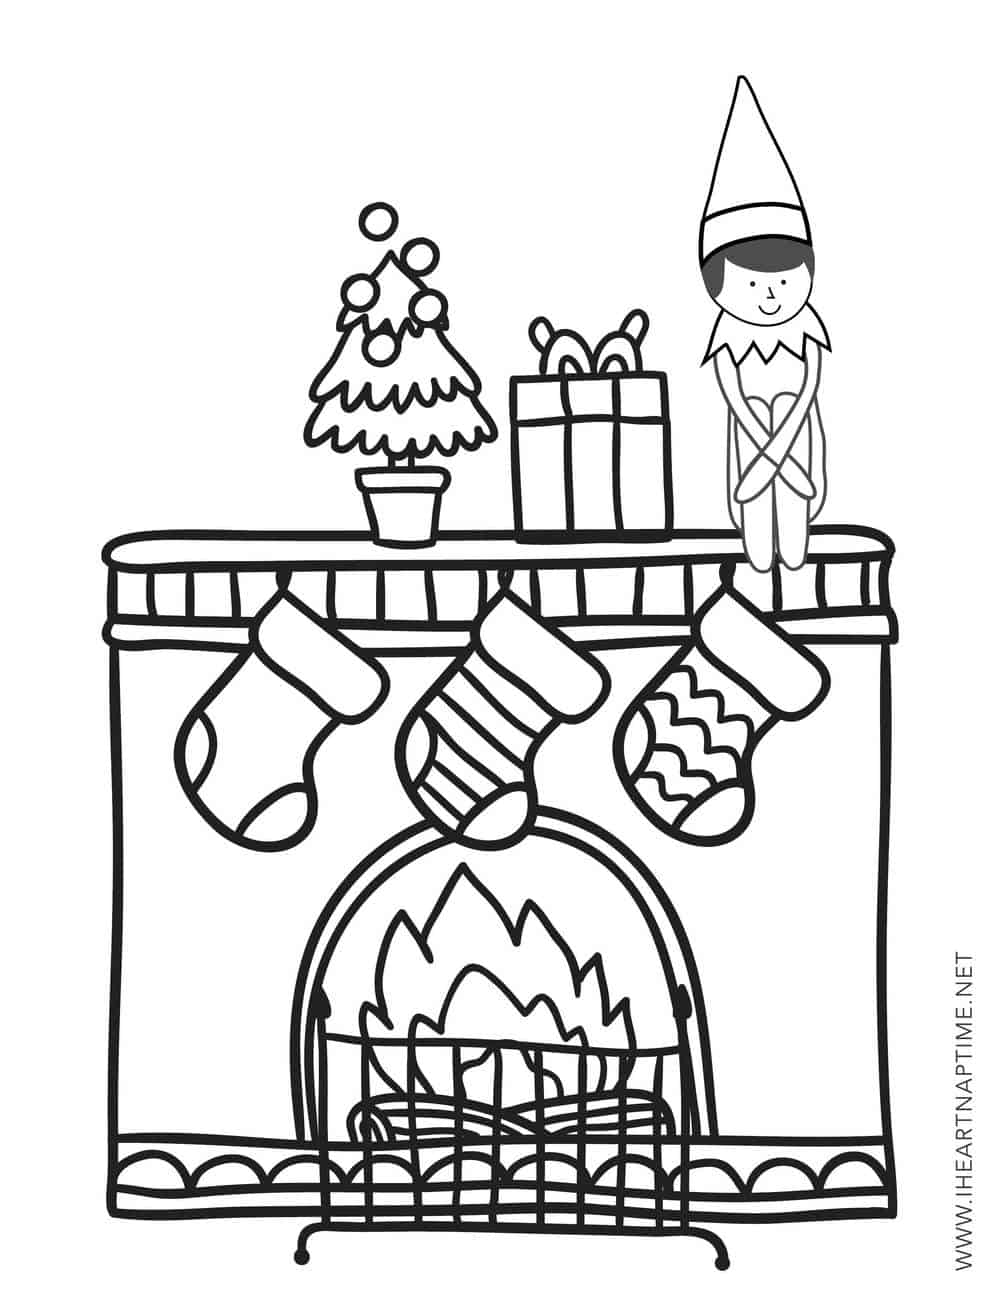 elf coloring sheet free printable elf on the shelf coloring pages tulamama coloring elf sheet